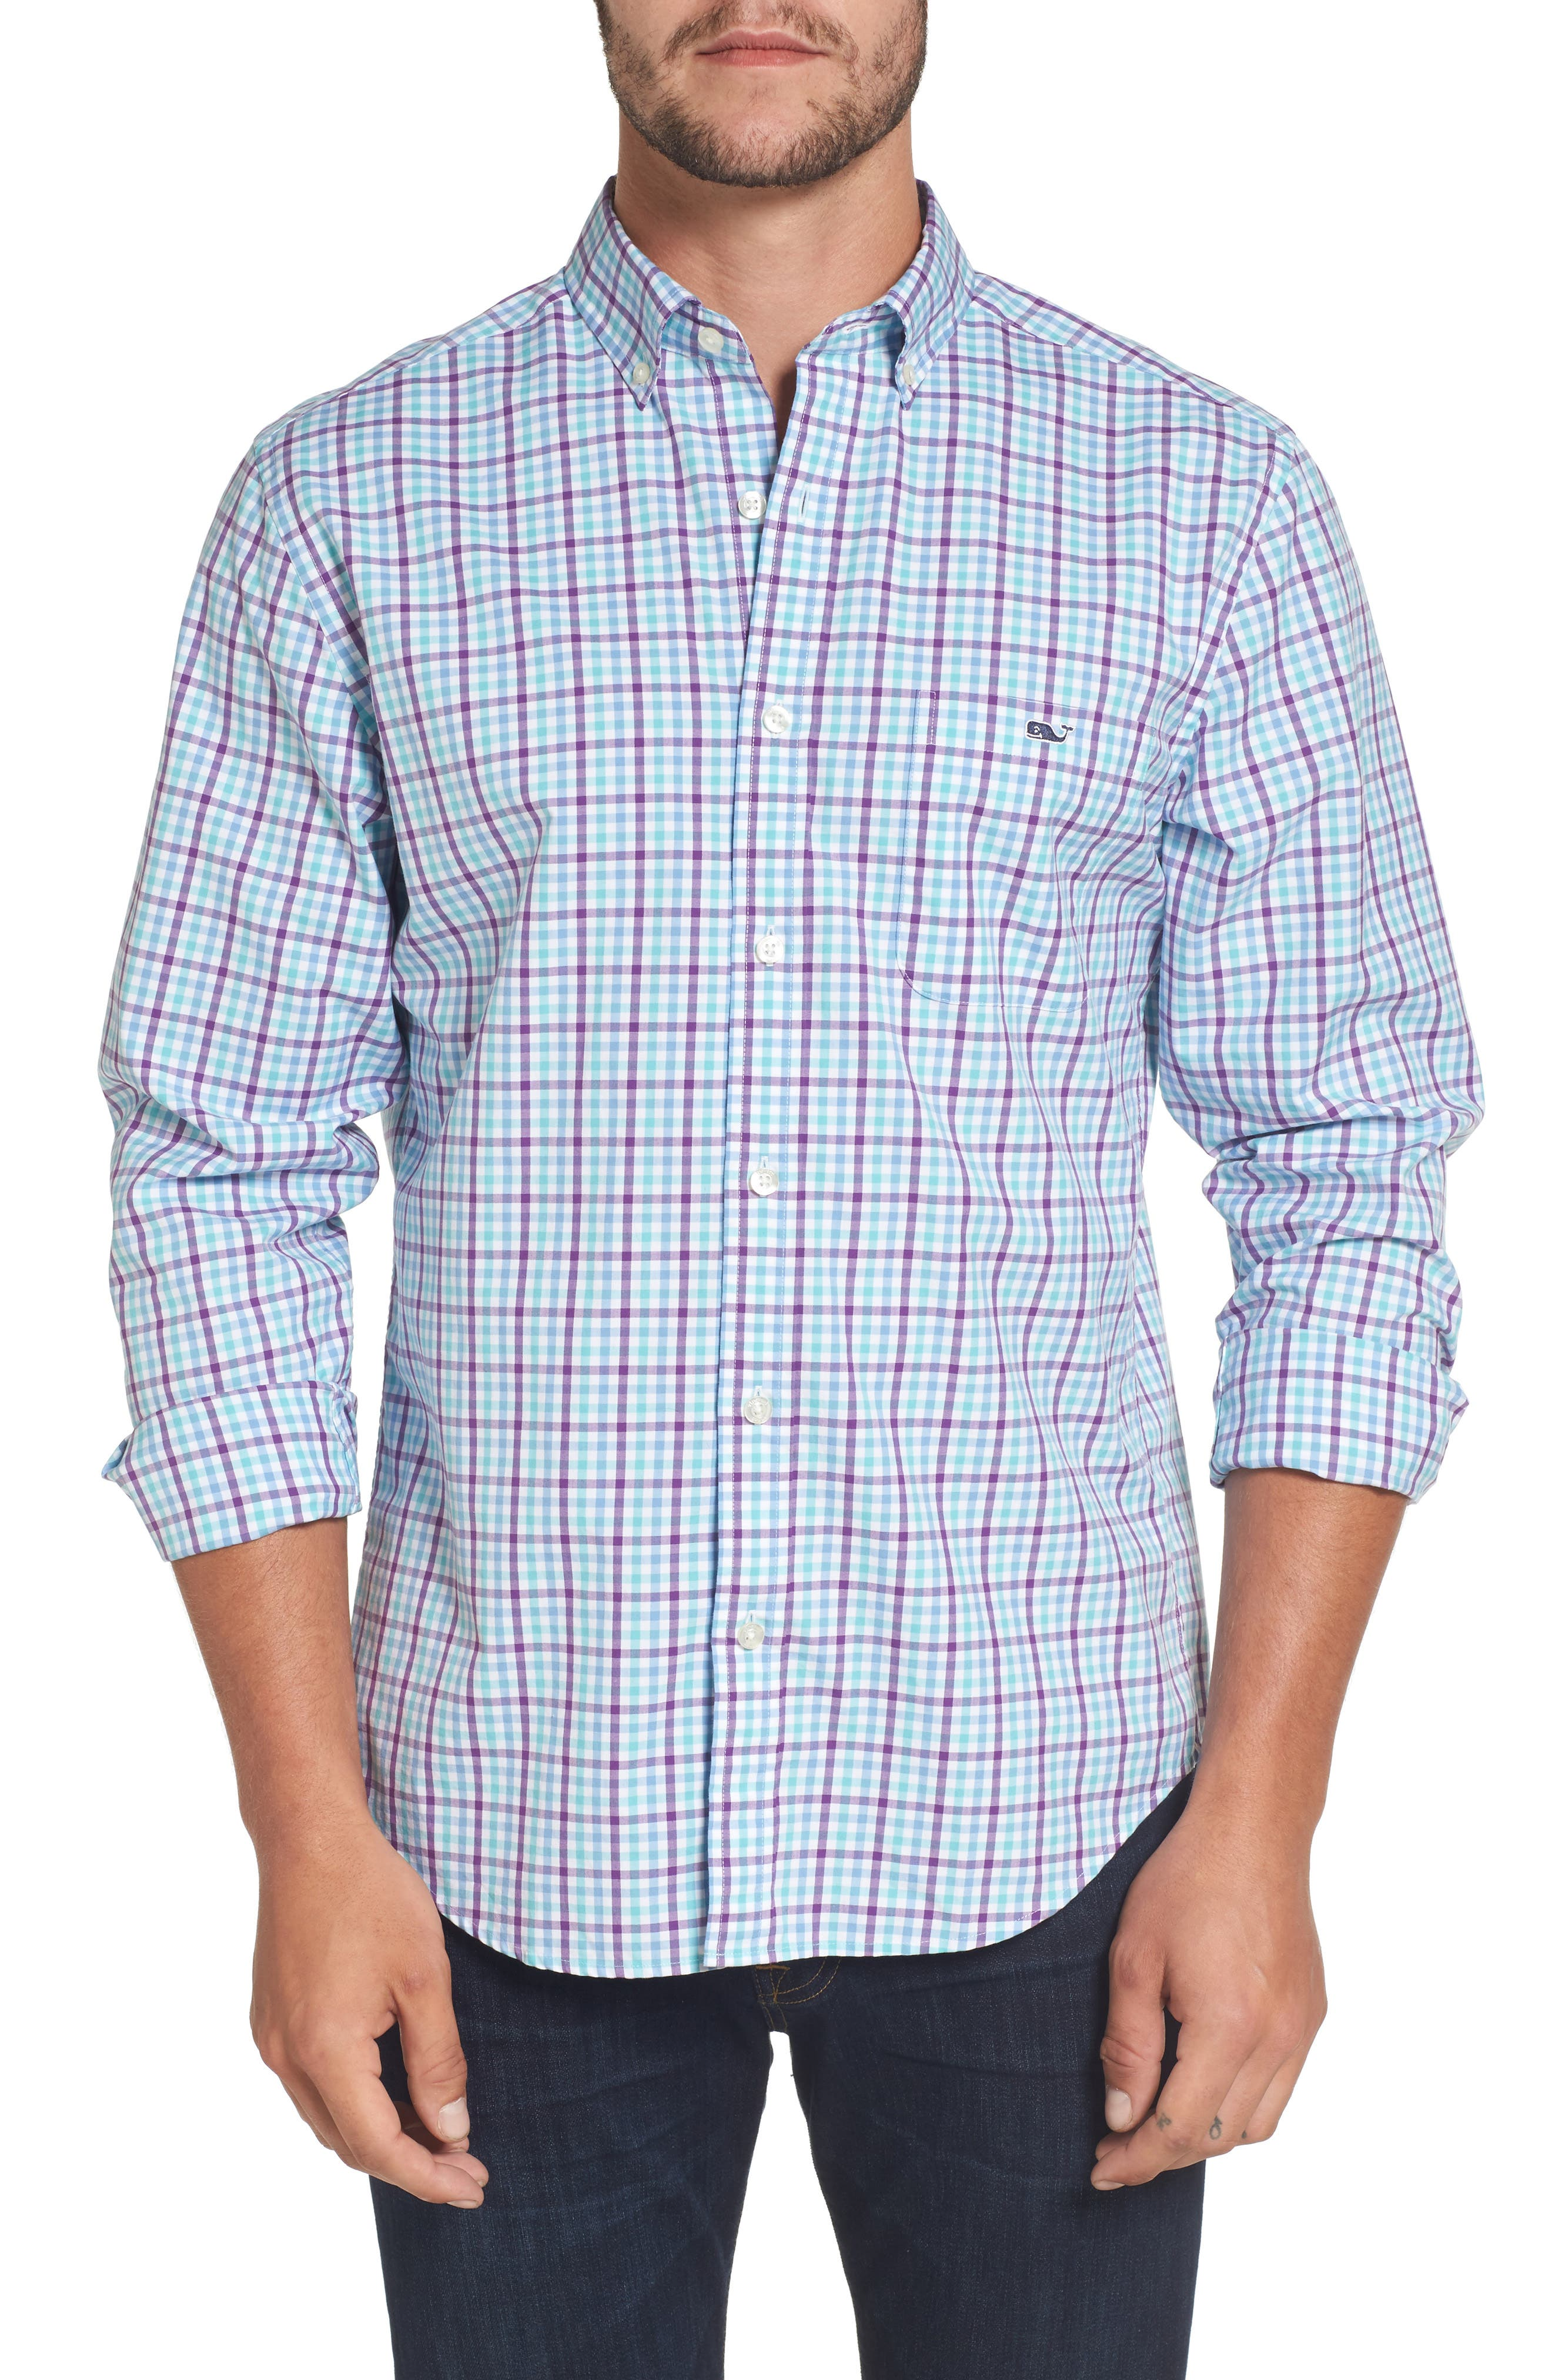 Alternate Image 1 Selected - vineyard vines Tucker Classic Fit Gingham Sport Shirt